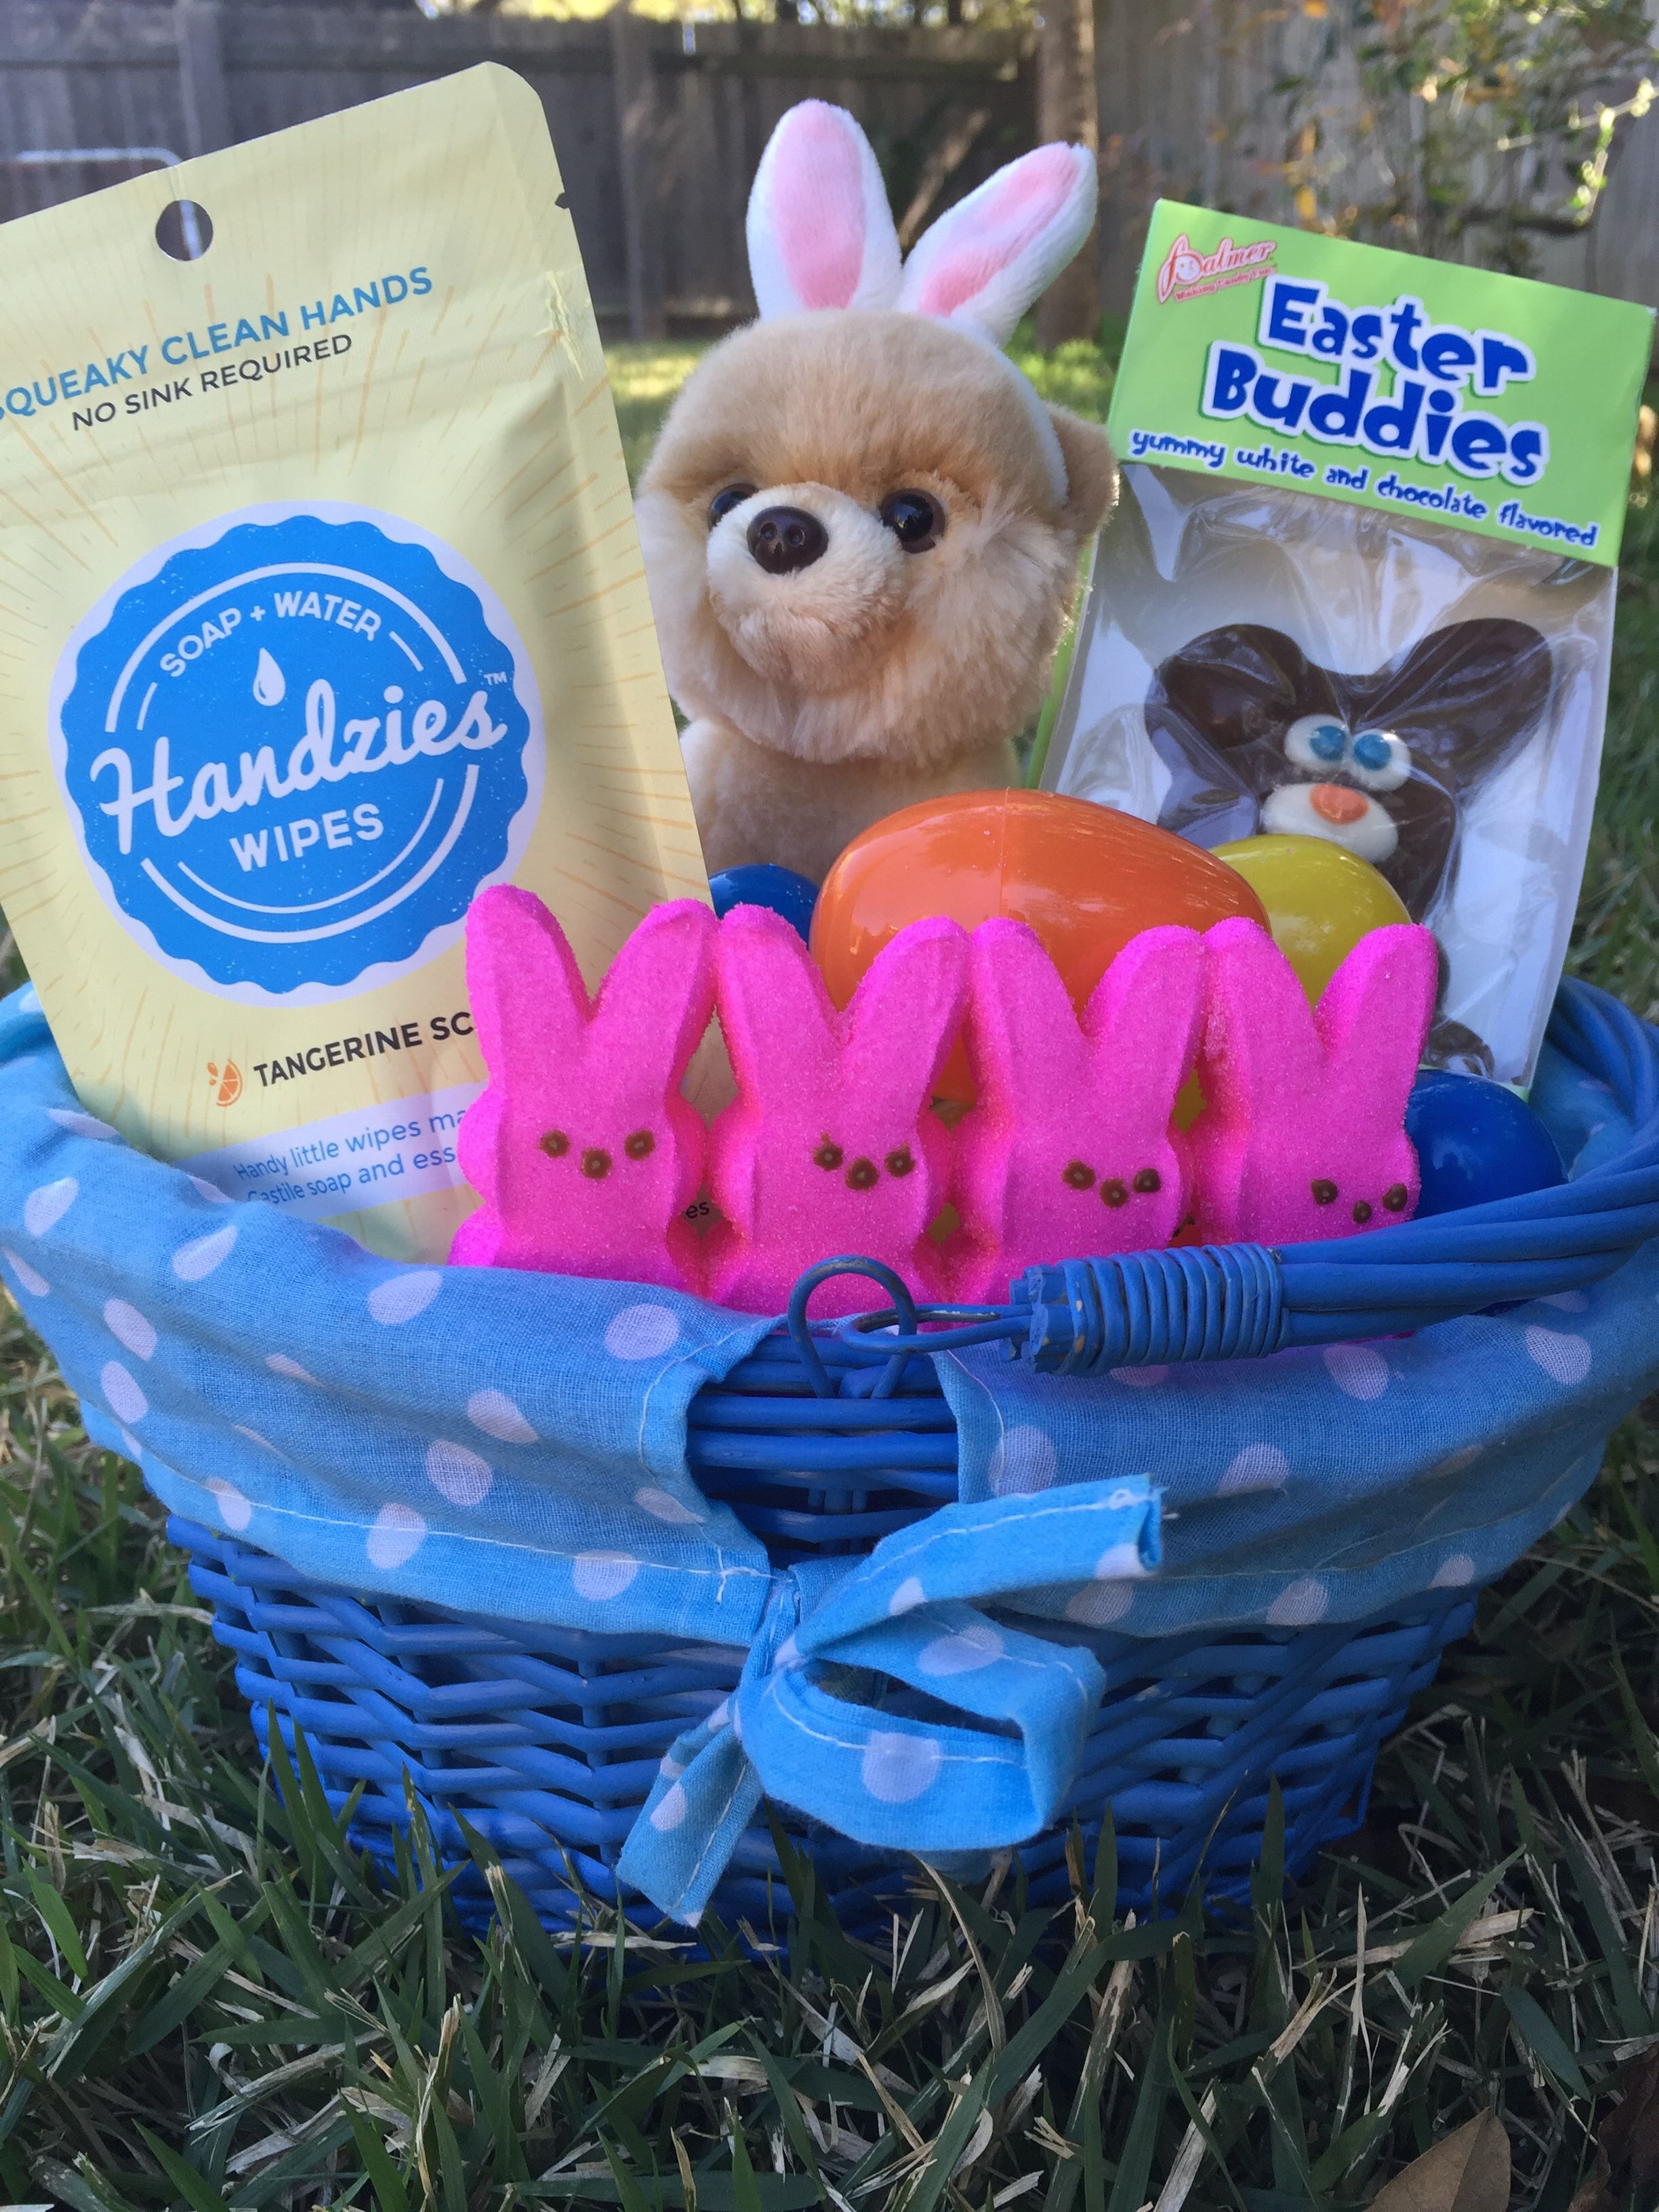 Awesome Easter baskets and sticky fingers!  Try stashing some Handzies in your baskets for cleaning up quick as a bunny!